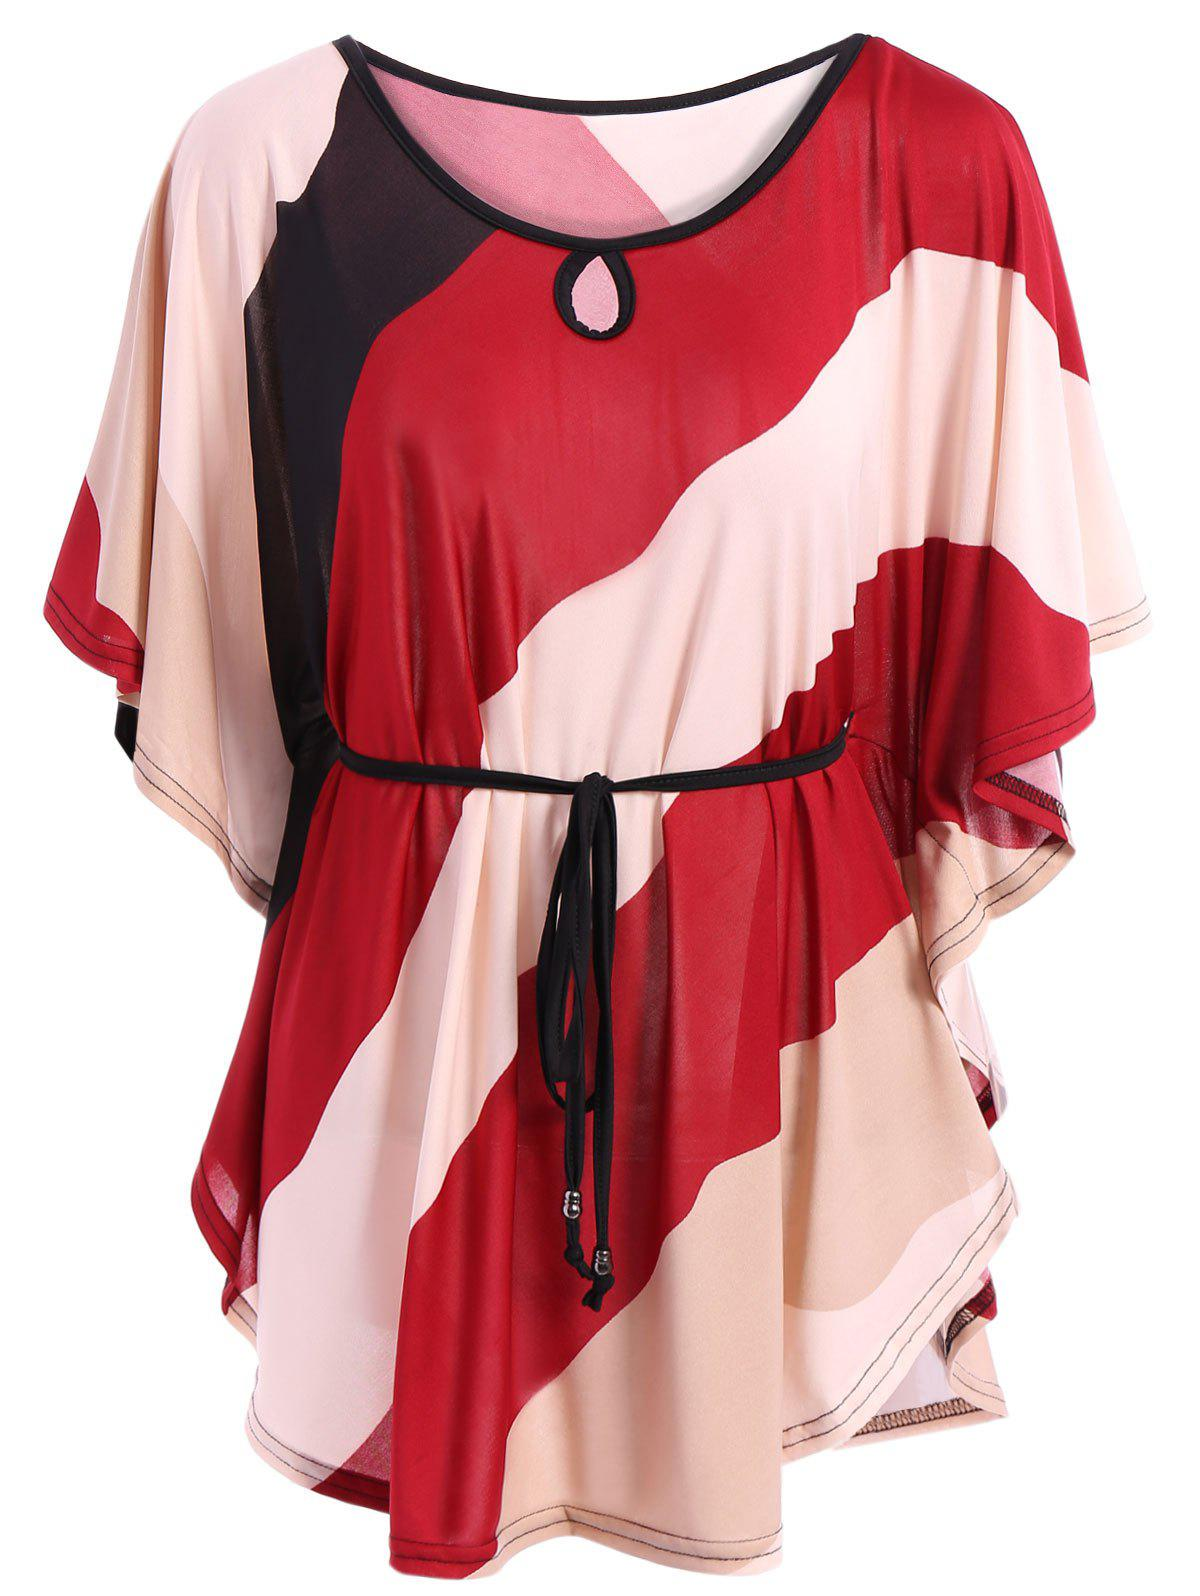 Loose-Fitting Women's Bat Sleeve Striped Plus Size T-Shirt - WINE RED 5XL